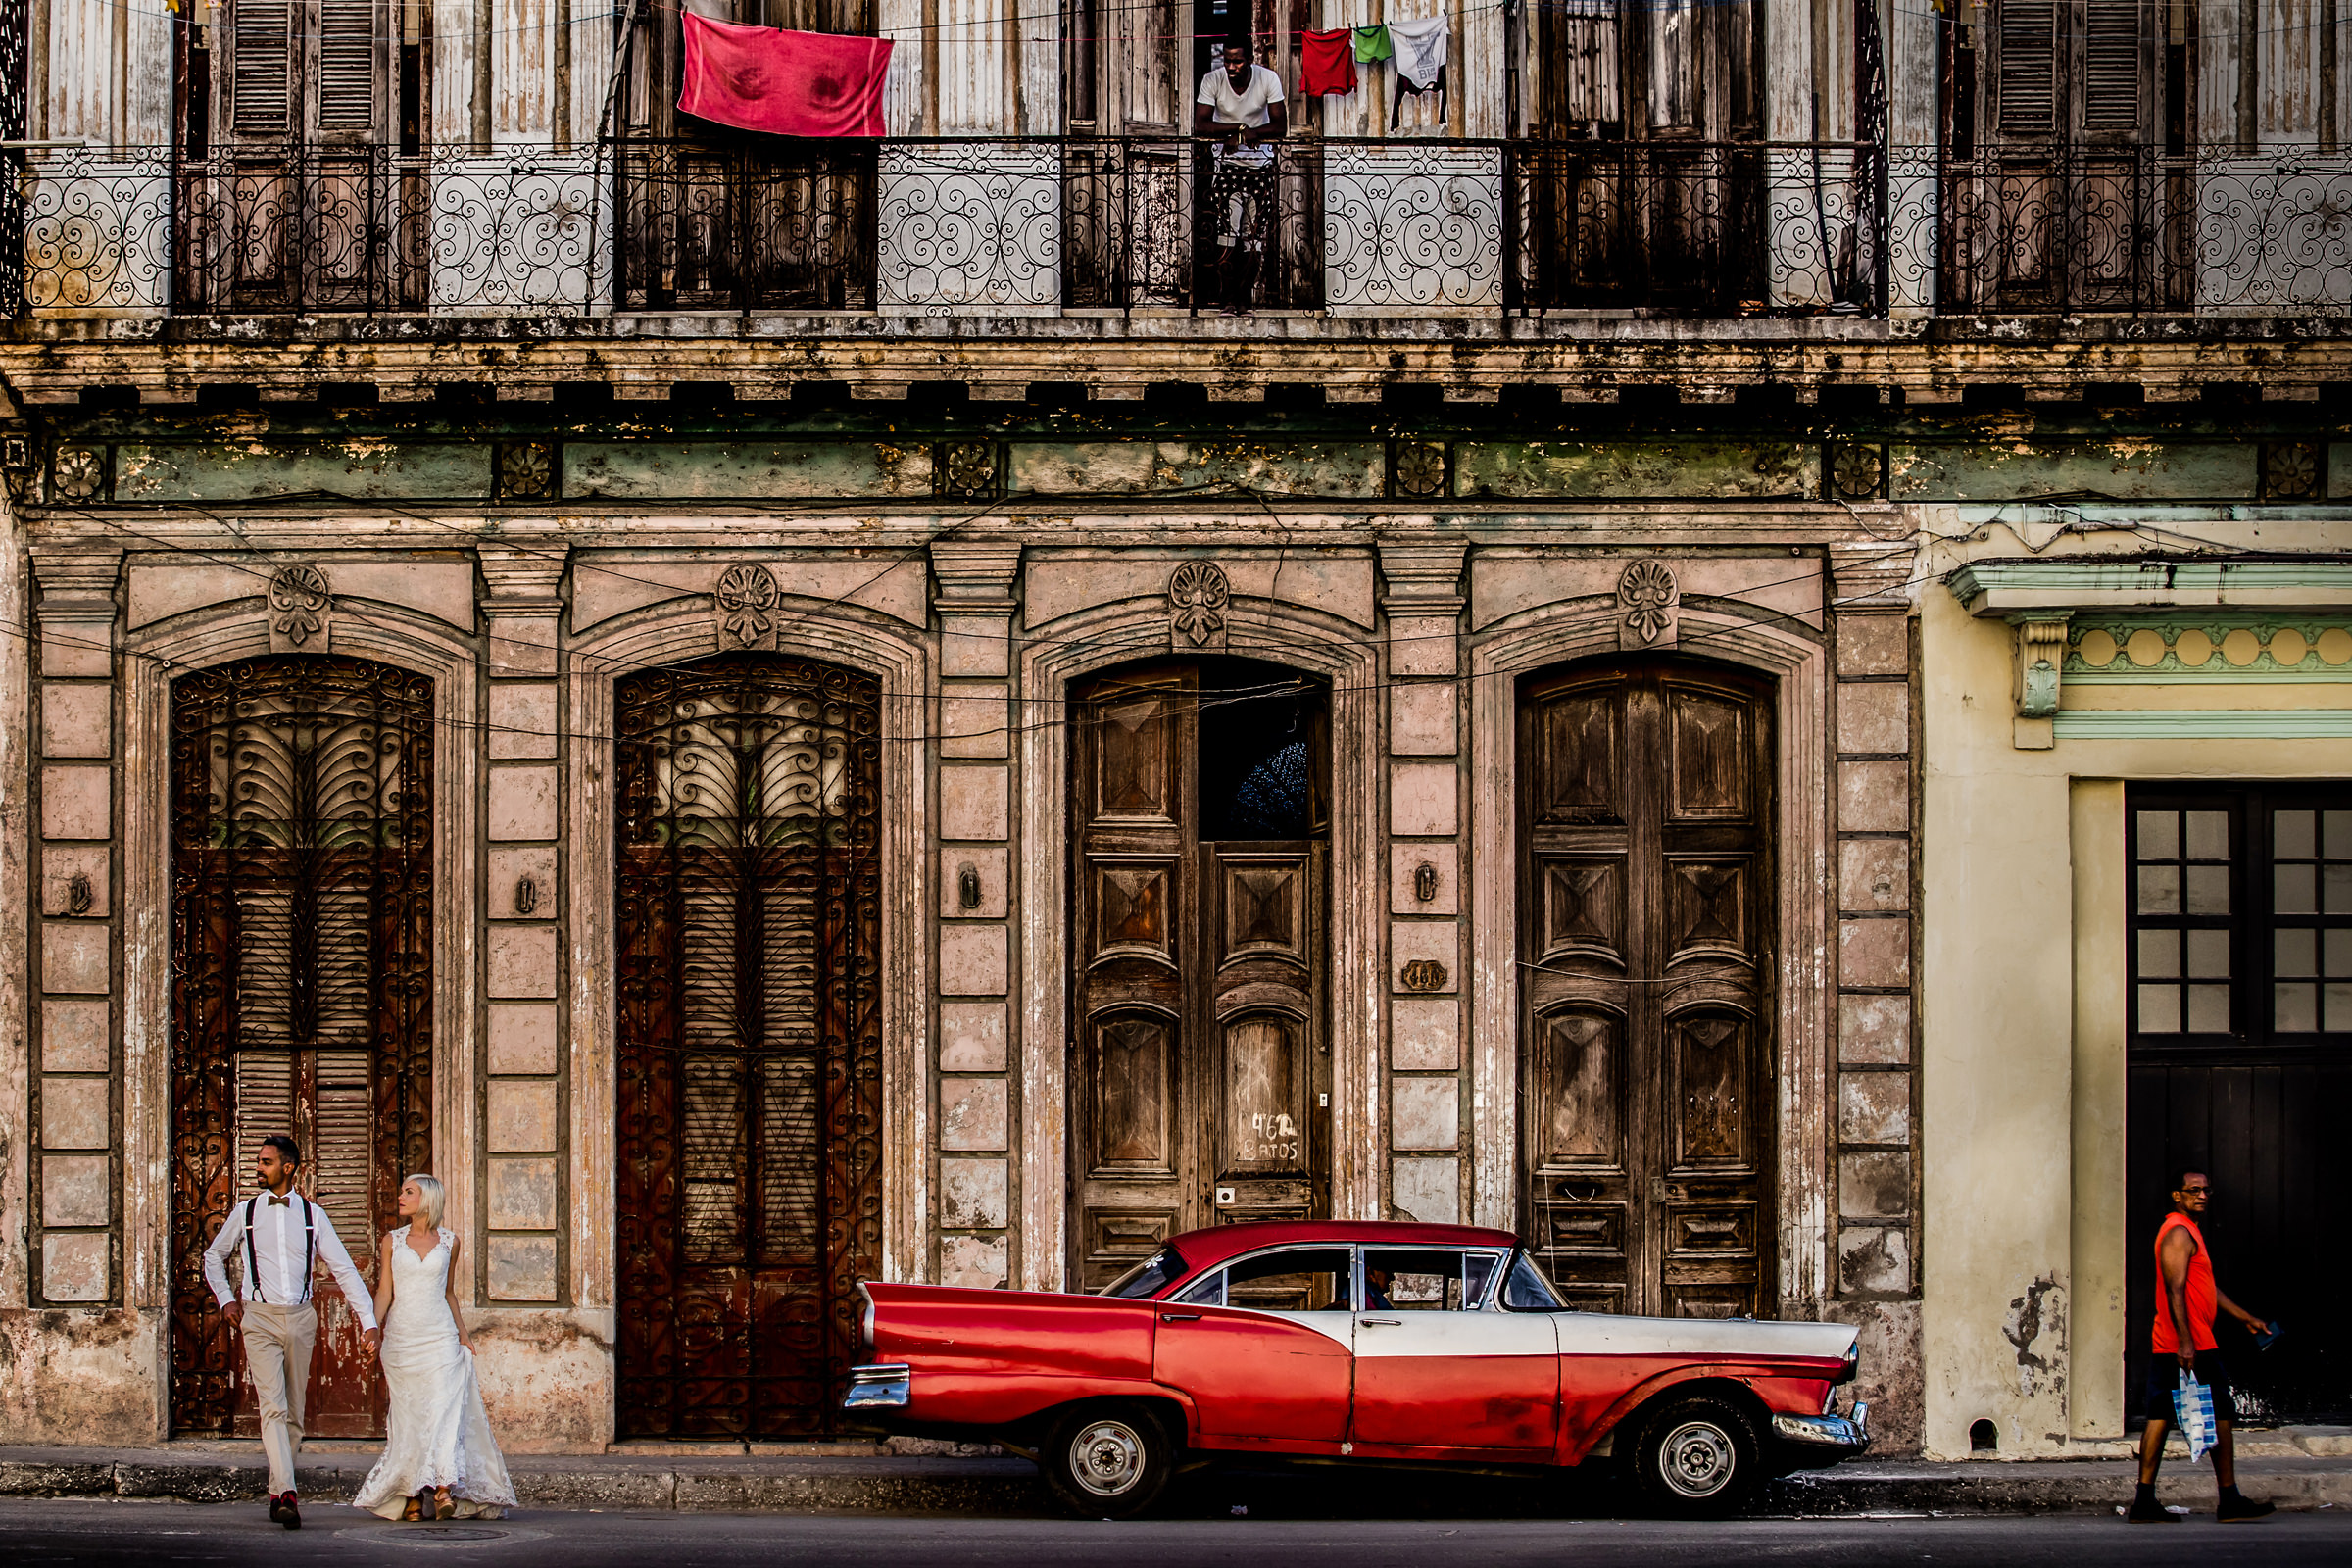 Couple in Cuba streetscape - photo by Eppel Photography